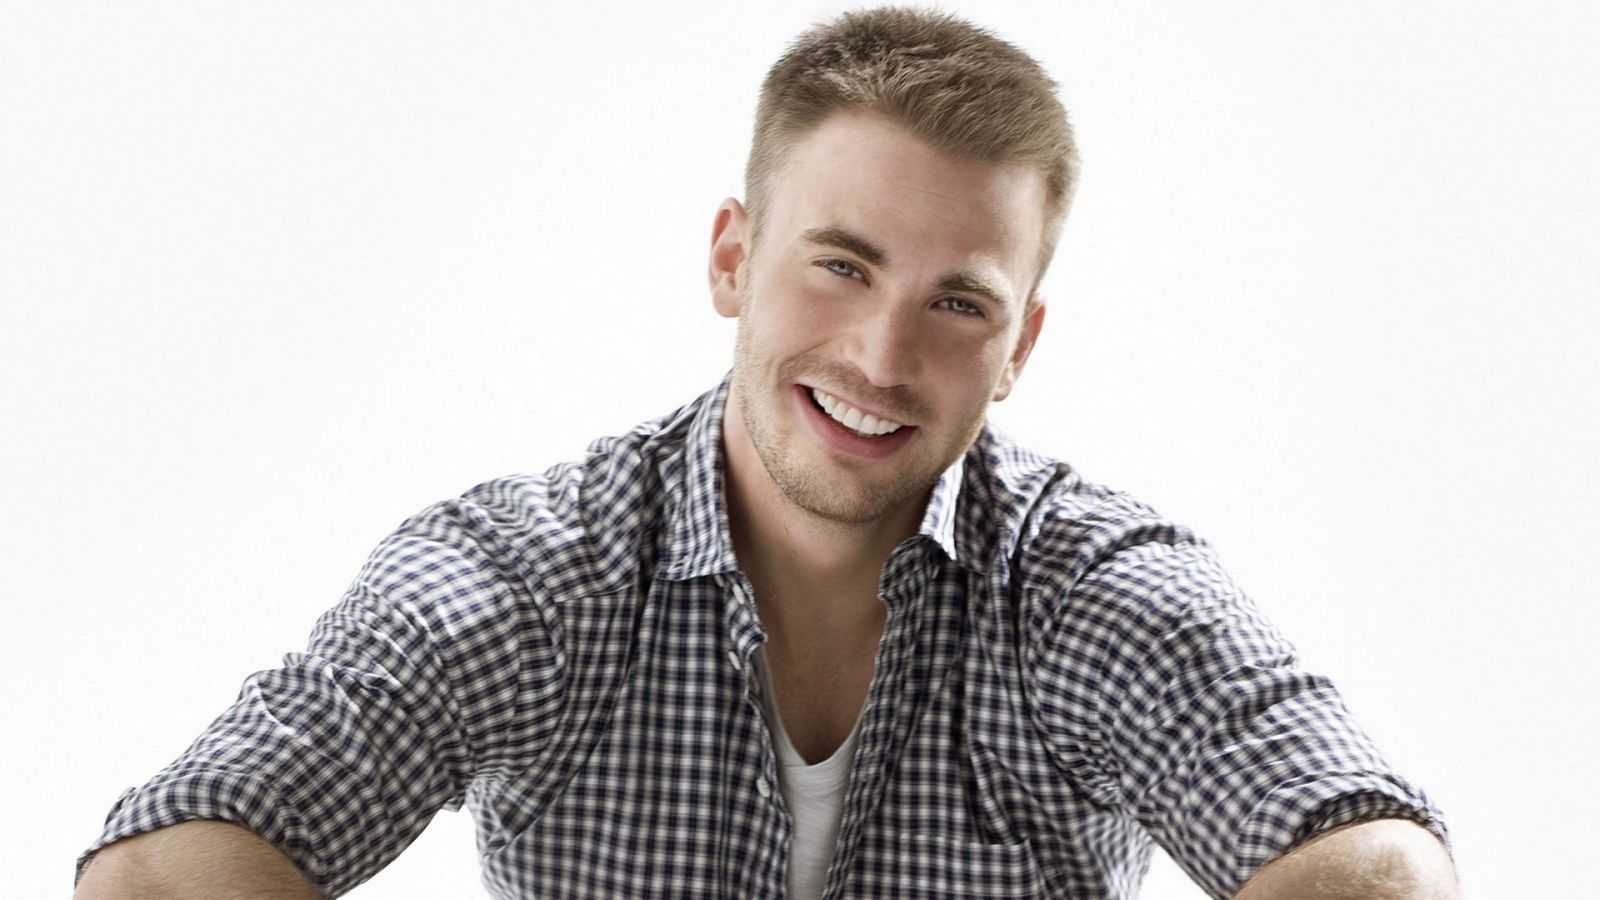 Chris Evans Wallpapers 20 images   Wallpaper Stream 1600x900